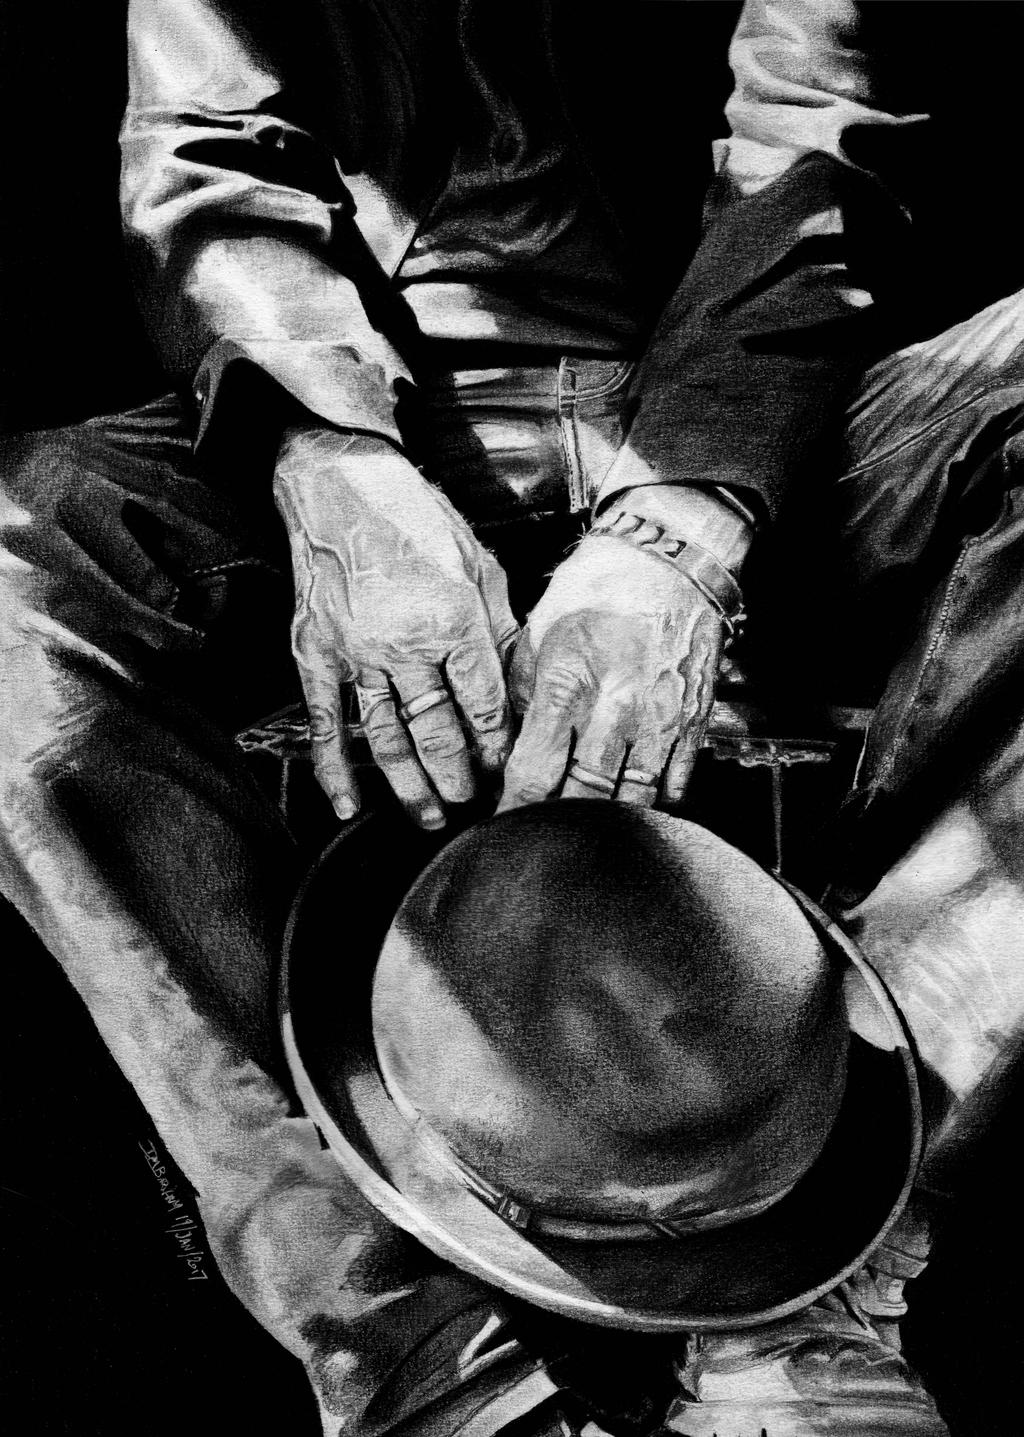 Tom Waits' Hat